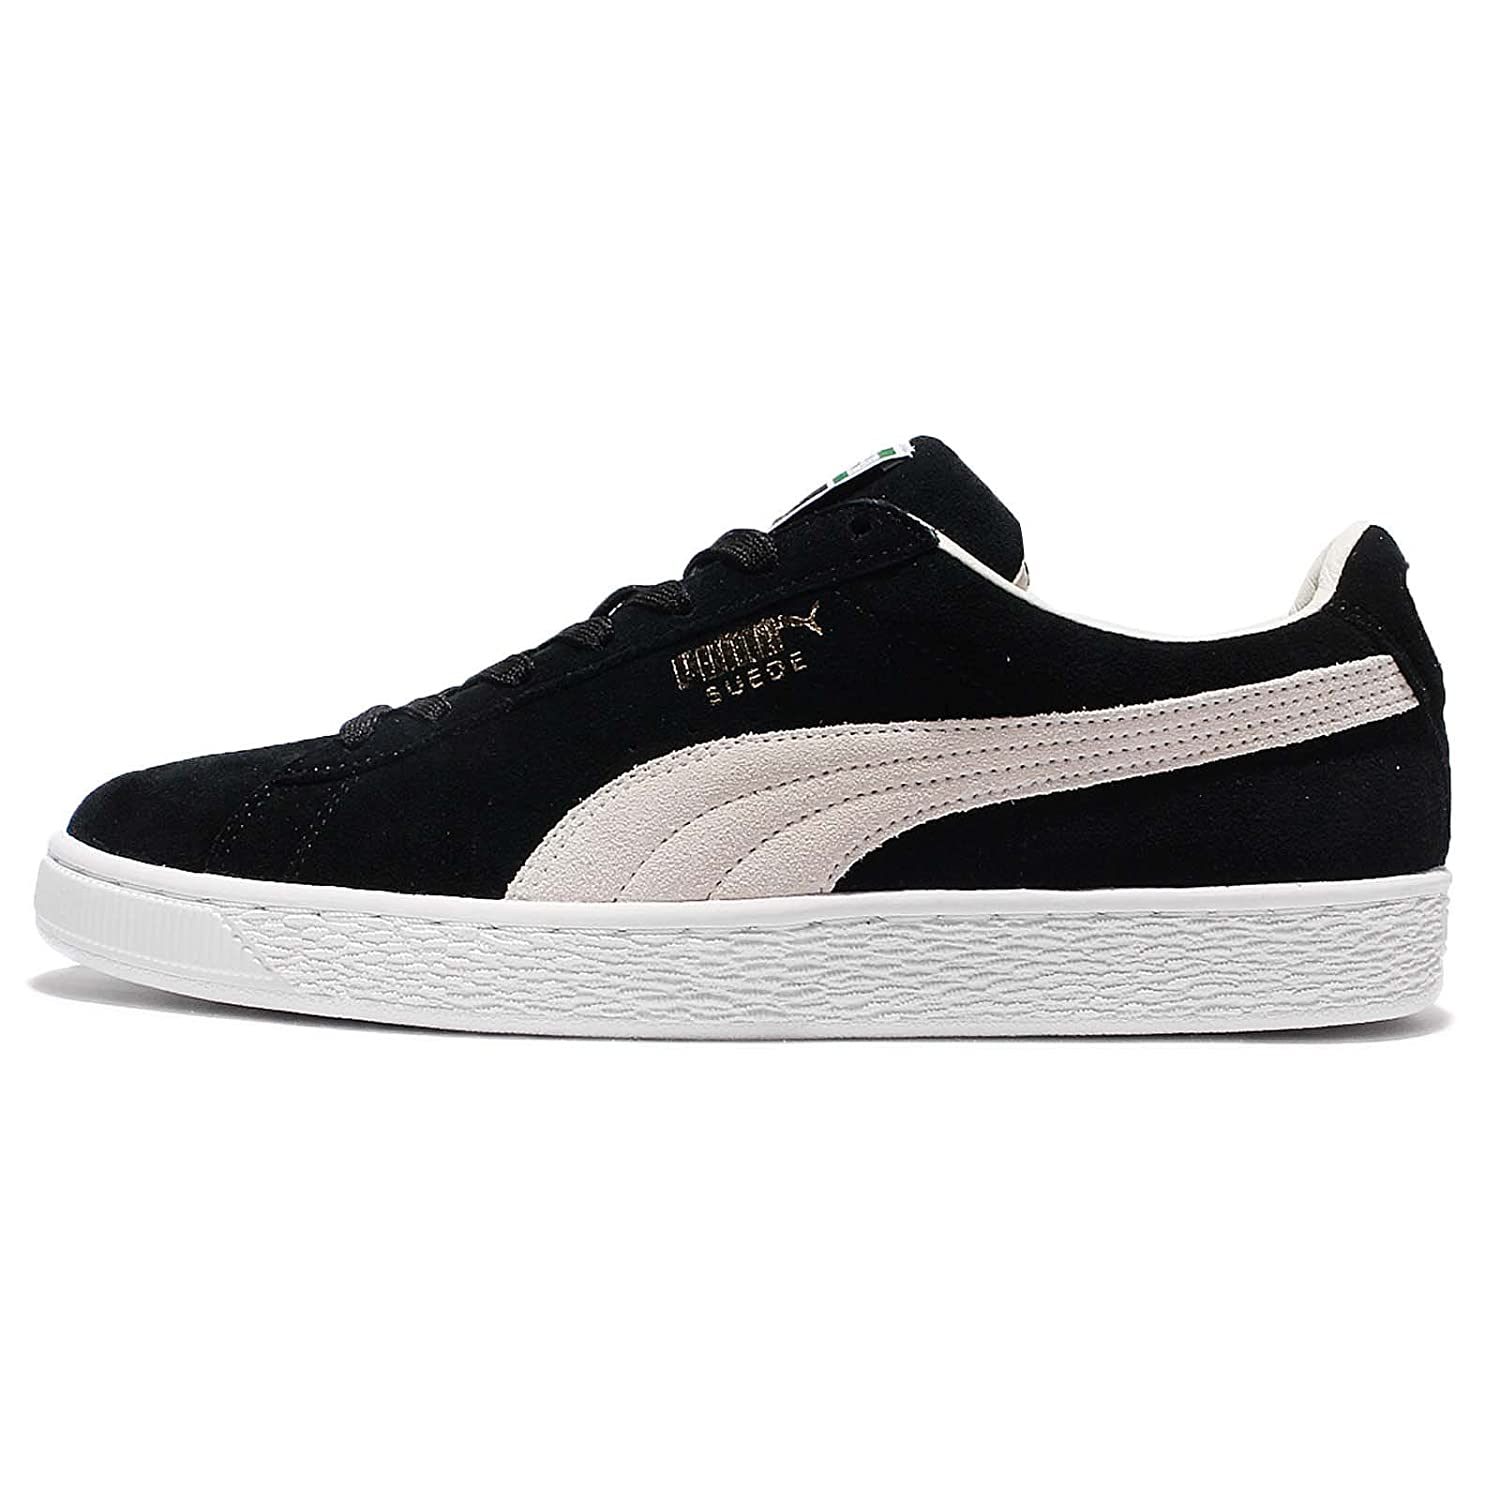 san francisco 2e555 a910d SHOES PUMA SUEDE SUPER PUMA (THE GET DOWN NETFLIX) UNISEX ...